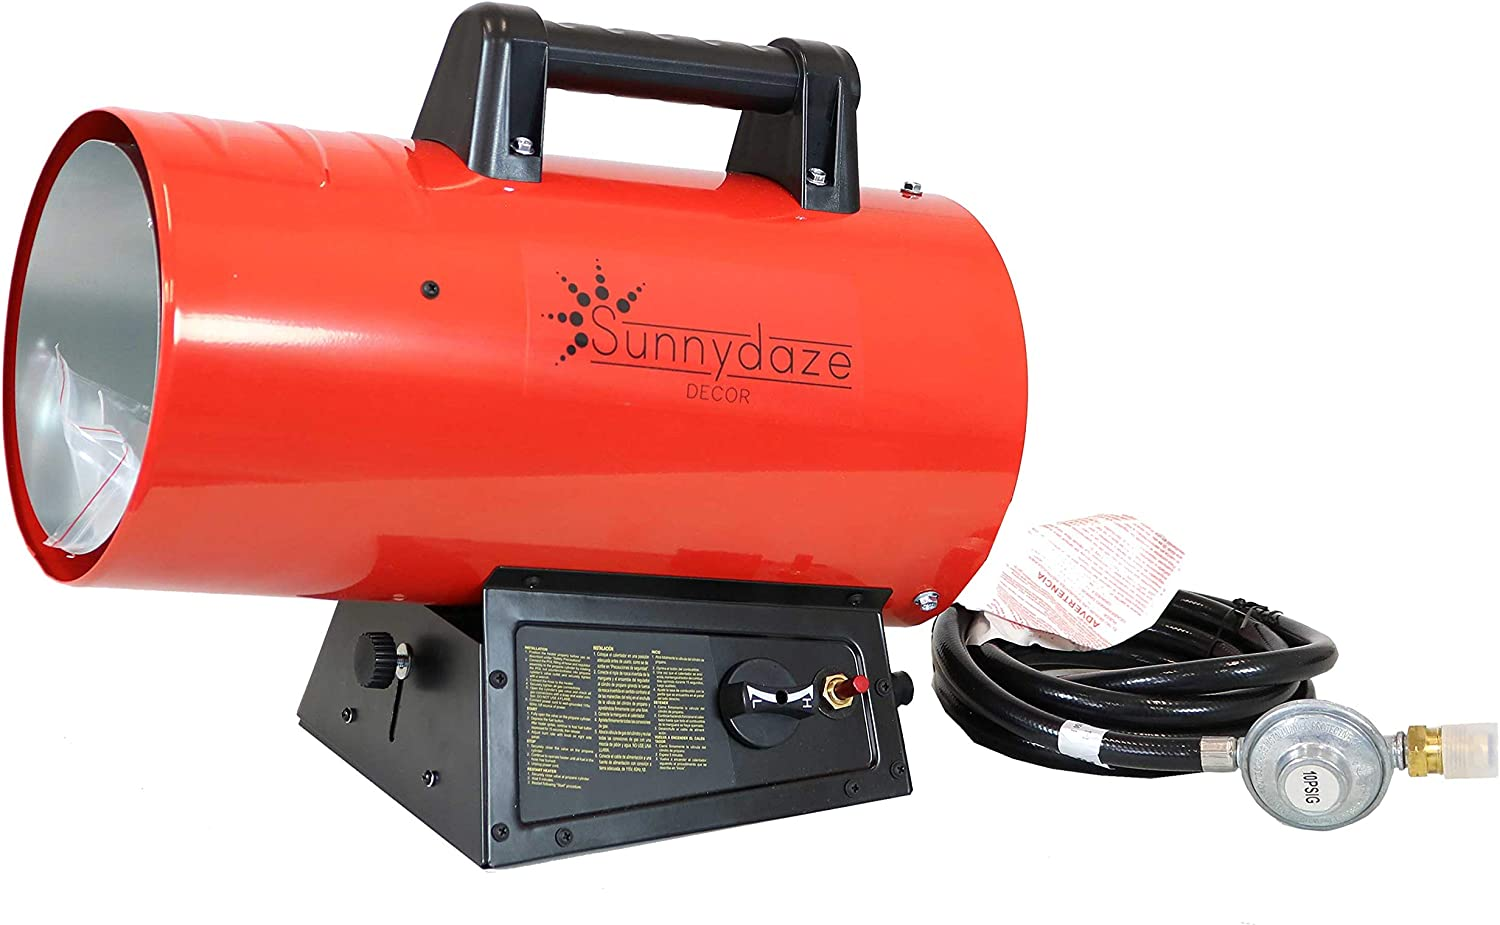 Sunnydaze 60,000 BTU Forced Air Propane Heater - Portable Heat for Construction Sites - Auto-Shutoff for Overheating Protection - Adjustable Heating Output - Piezo Ignition - Red and Black